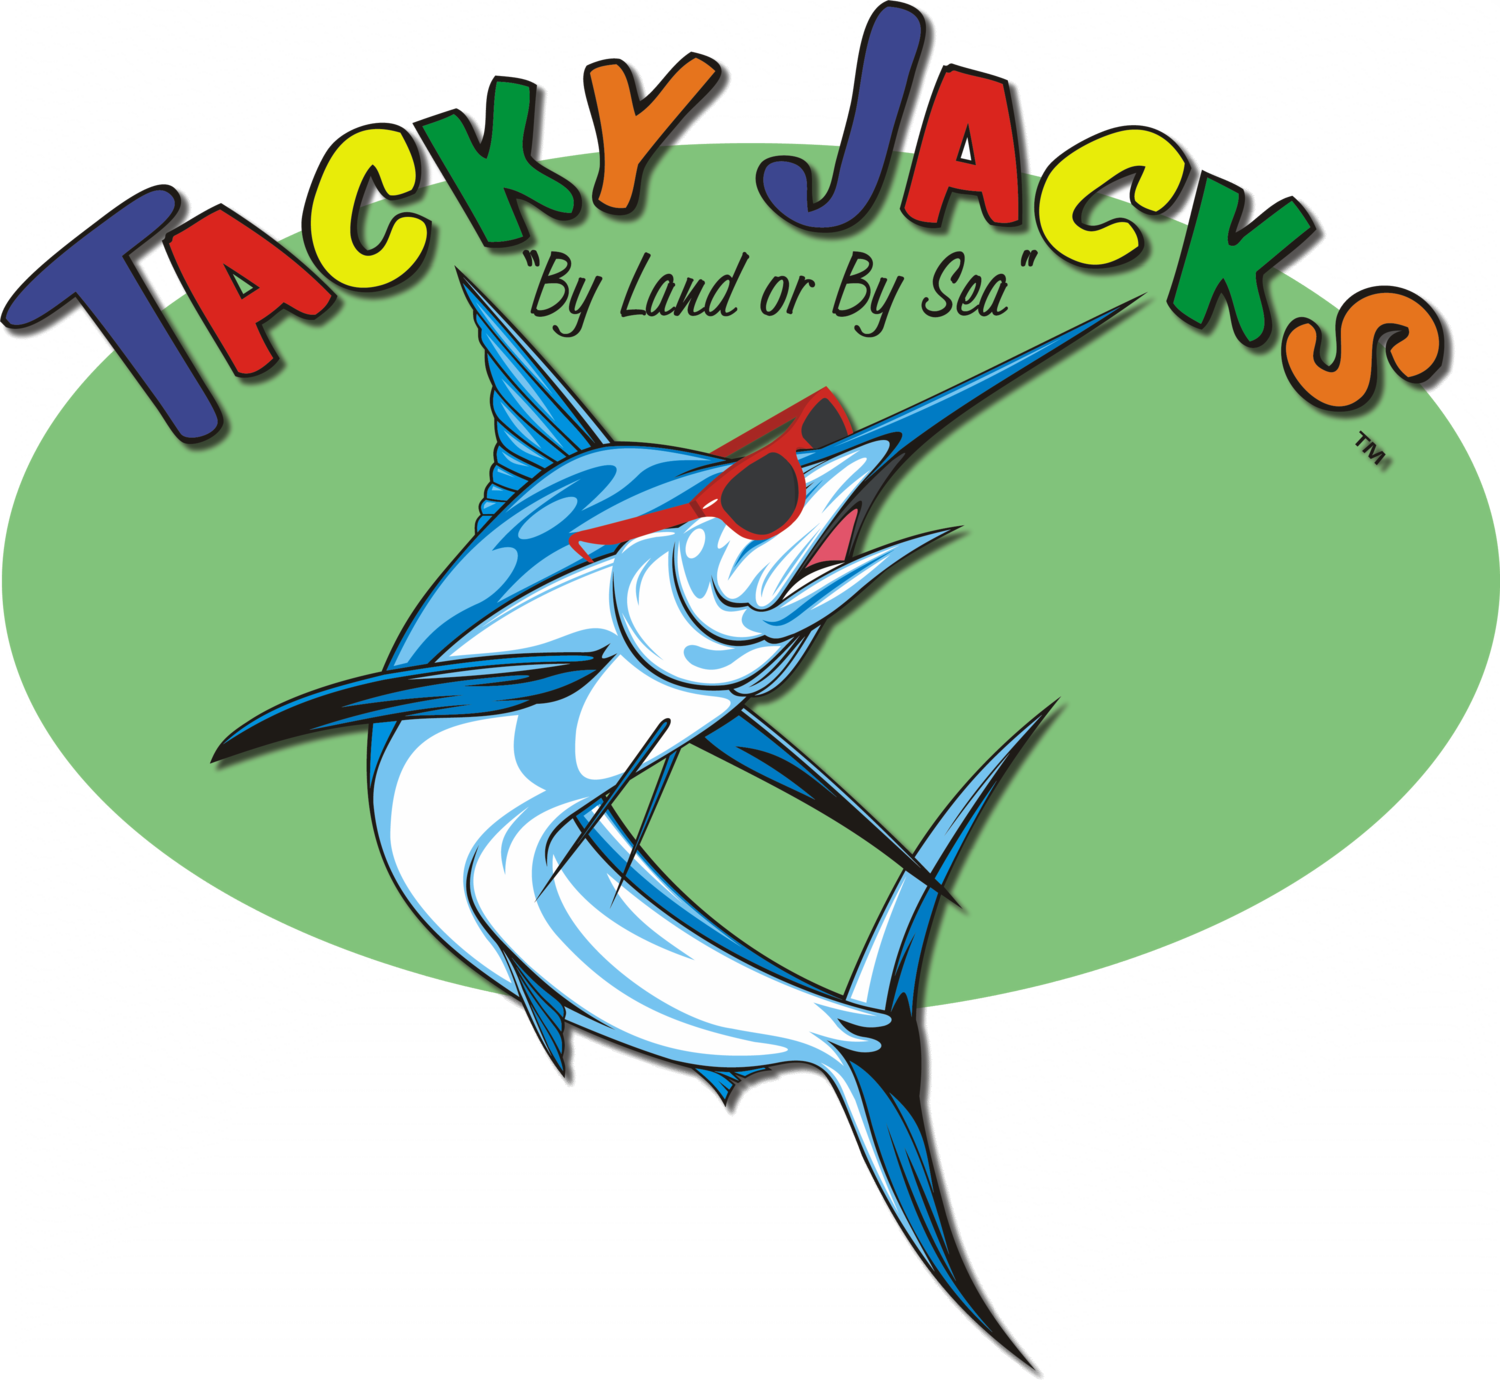 Tacky Jacks Seafood Restaurant and Tavern